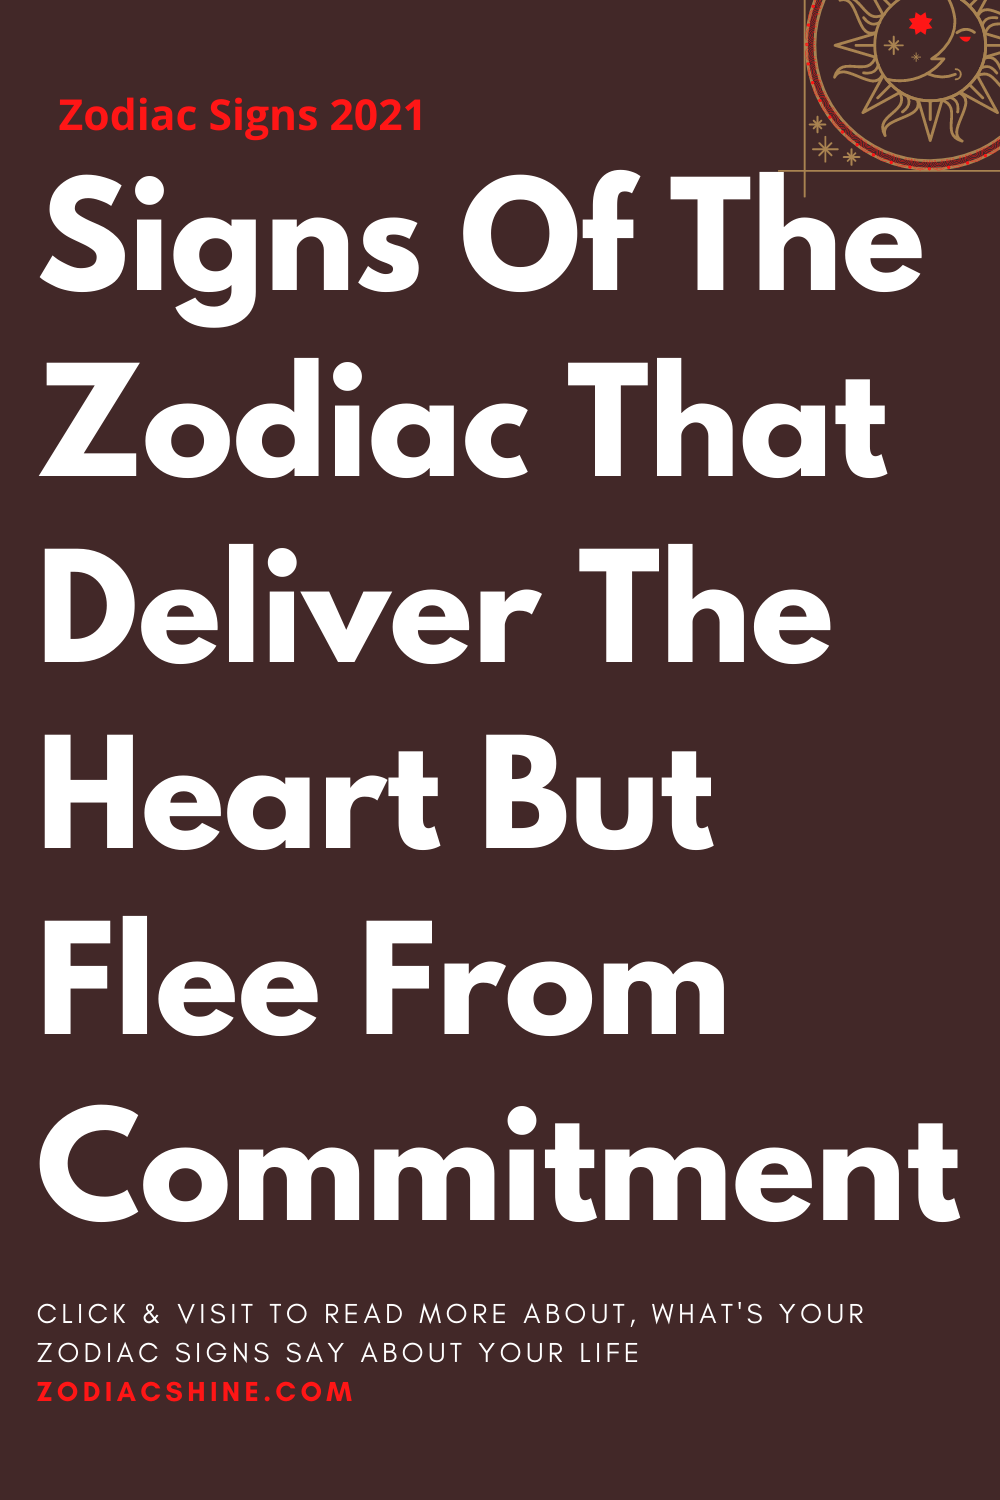 Signs Of The Zodiac That Deliver The Heart But Flee From Commitment